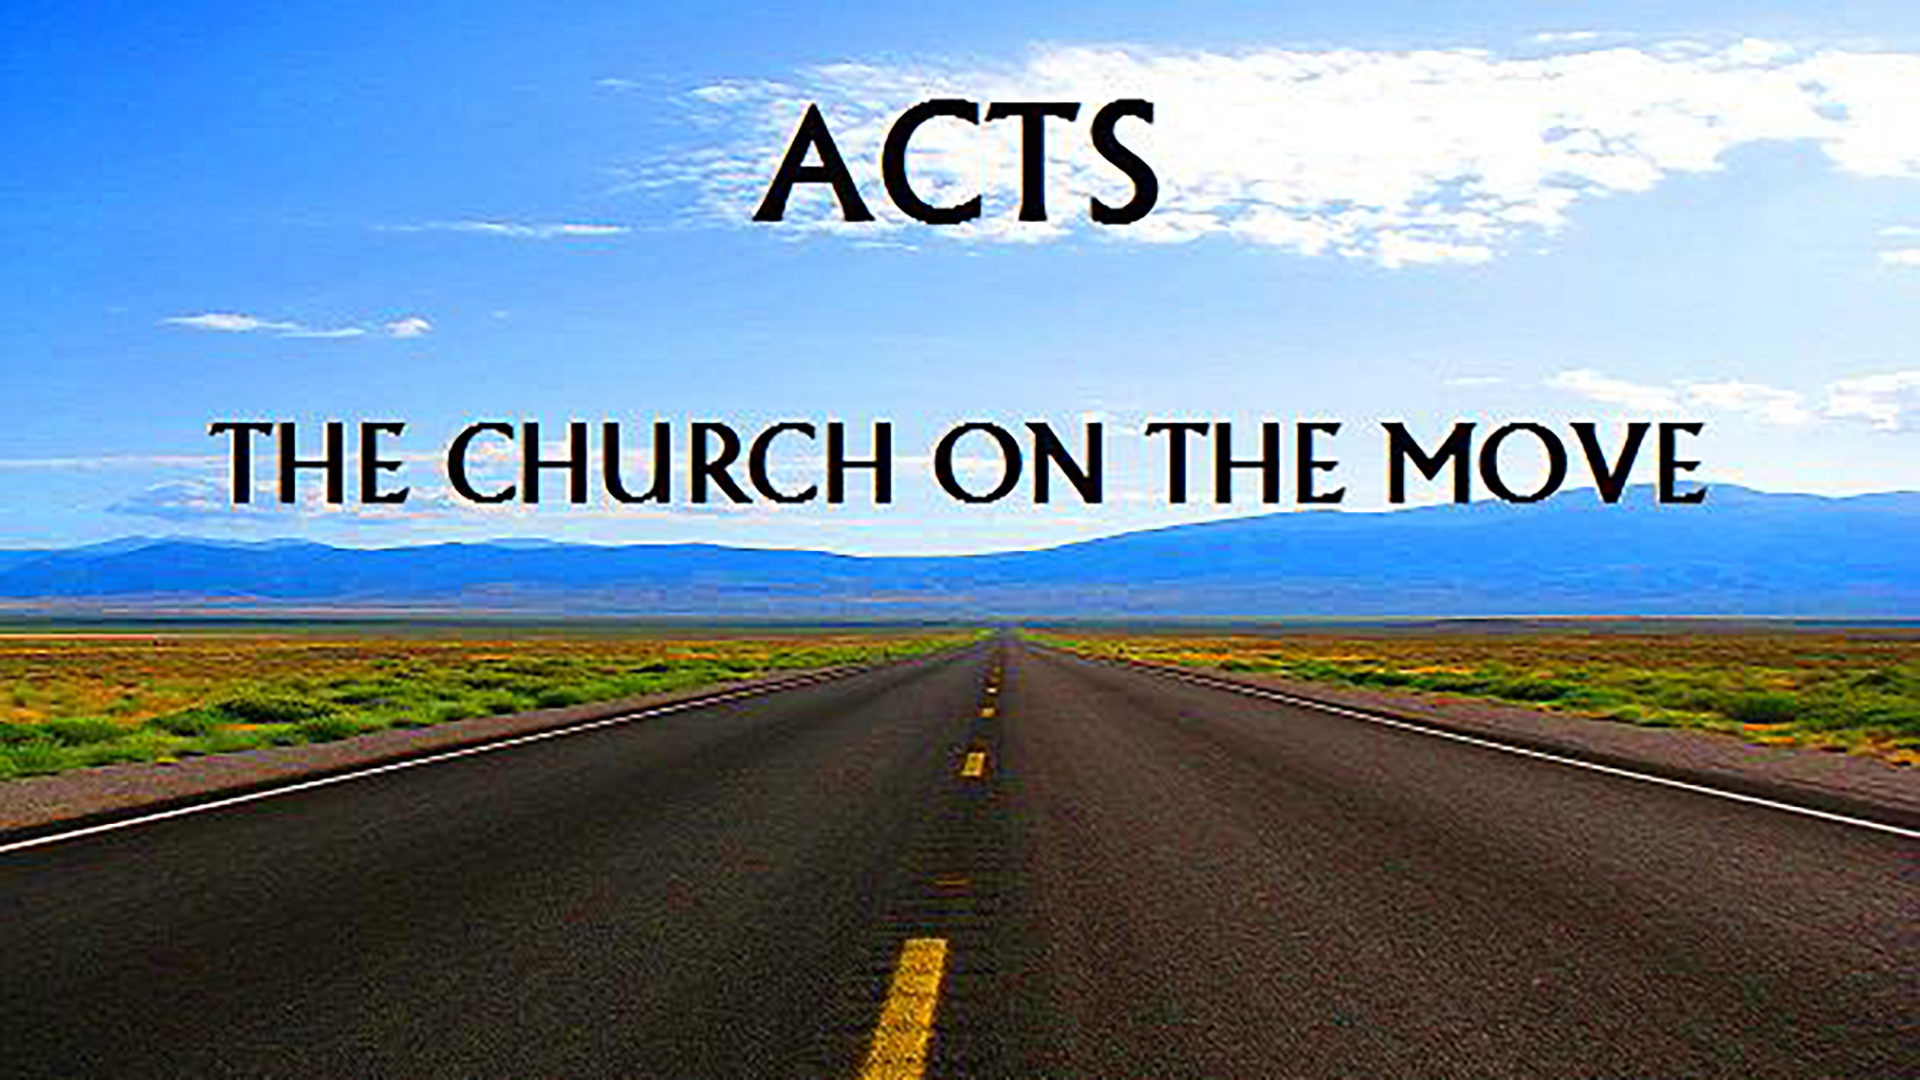 The Church on the Move